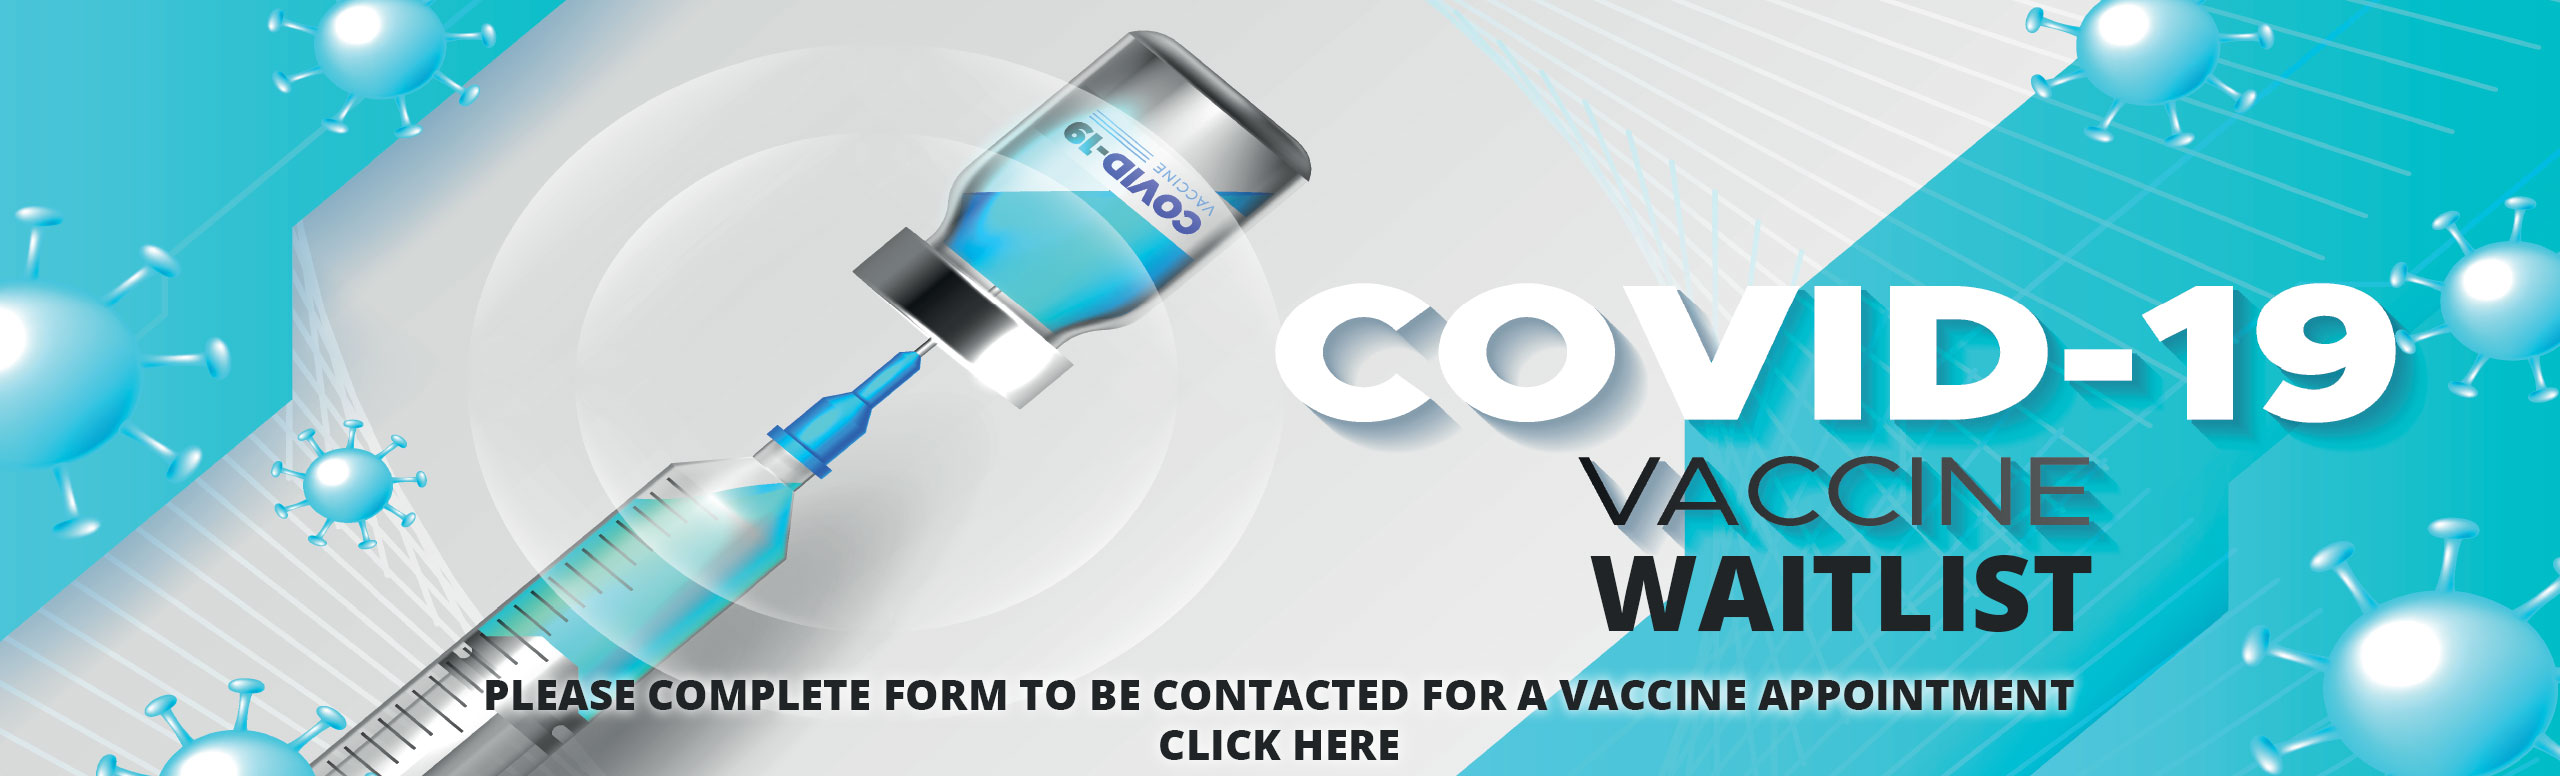 Covid-19 Vaccine Waitlist Please complete form to be contacted for a Vaccine appointment Click here